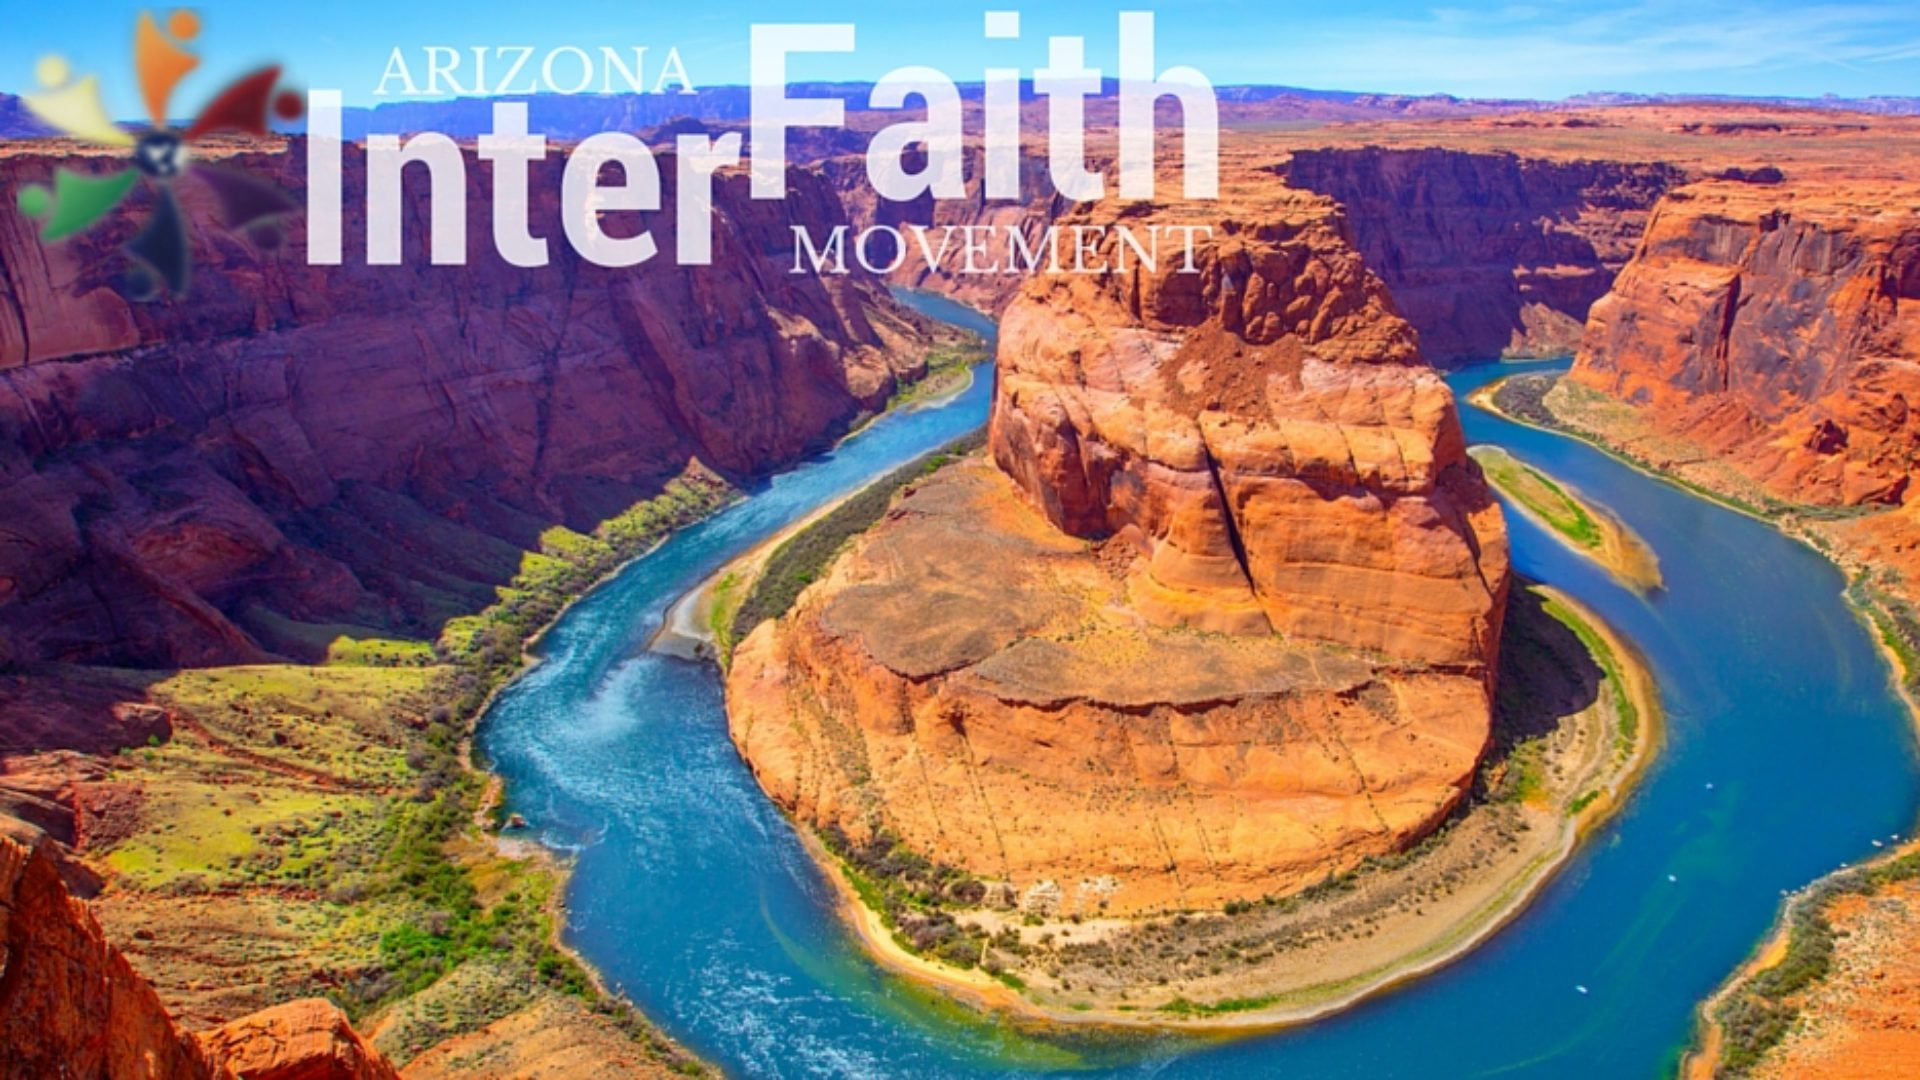 Arizona Interfaith Movement